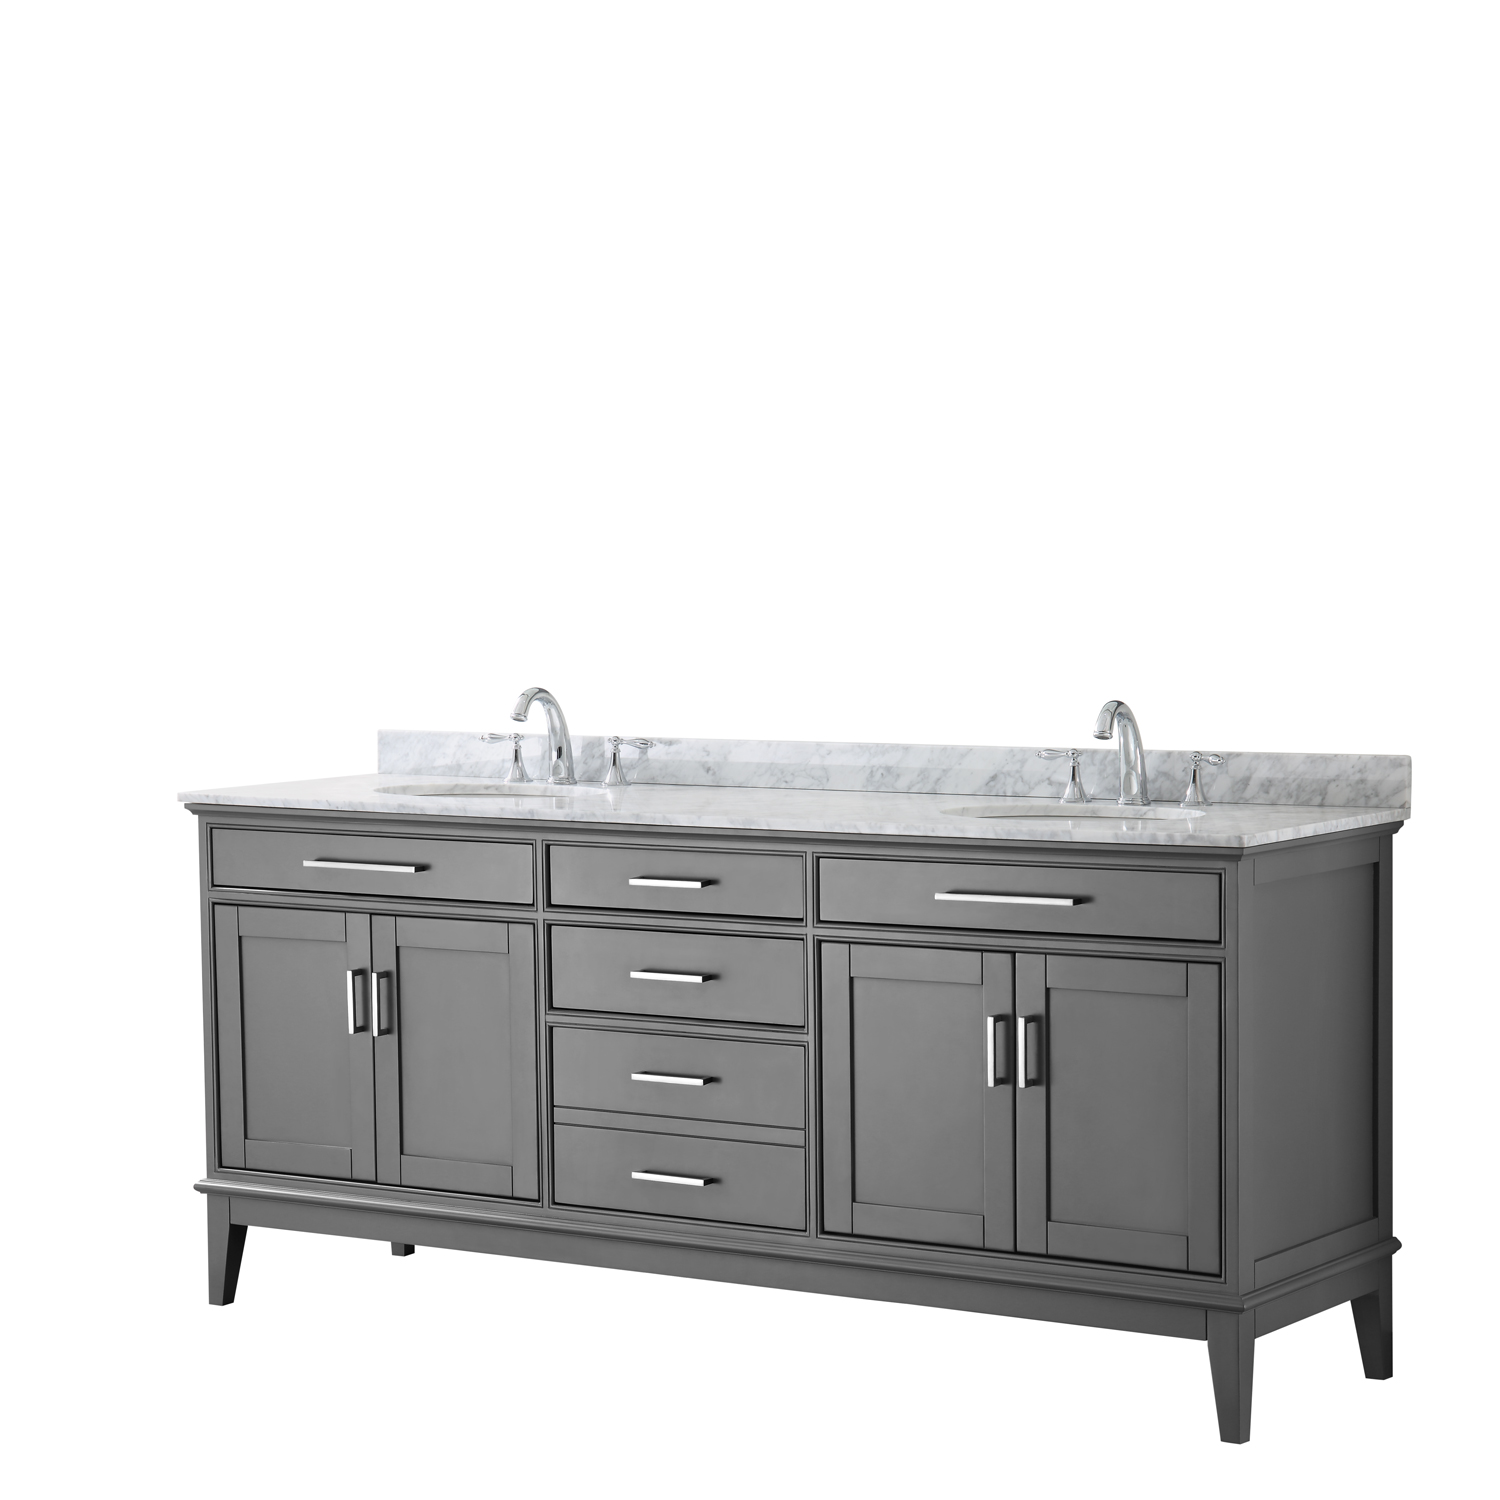 """Contemporary 80"""" Double Bathroom Vanity in Dark Gray, White Carrara Marble Countertop with Undermount Sinks, and Mirror Options"""